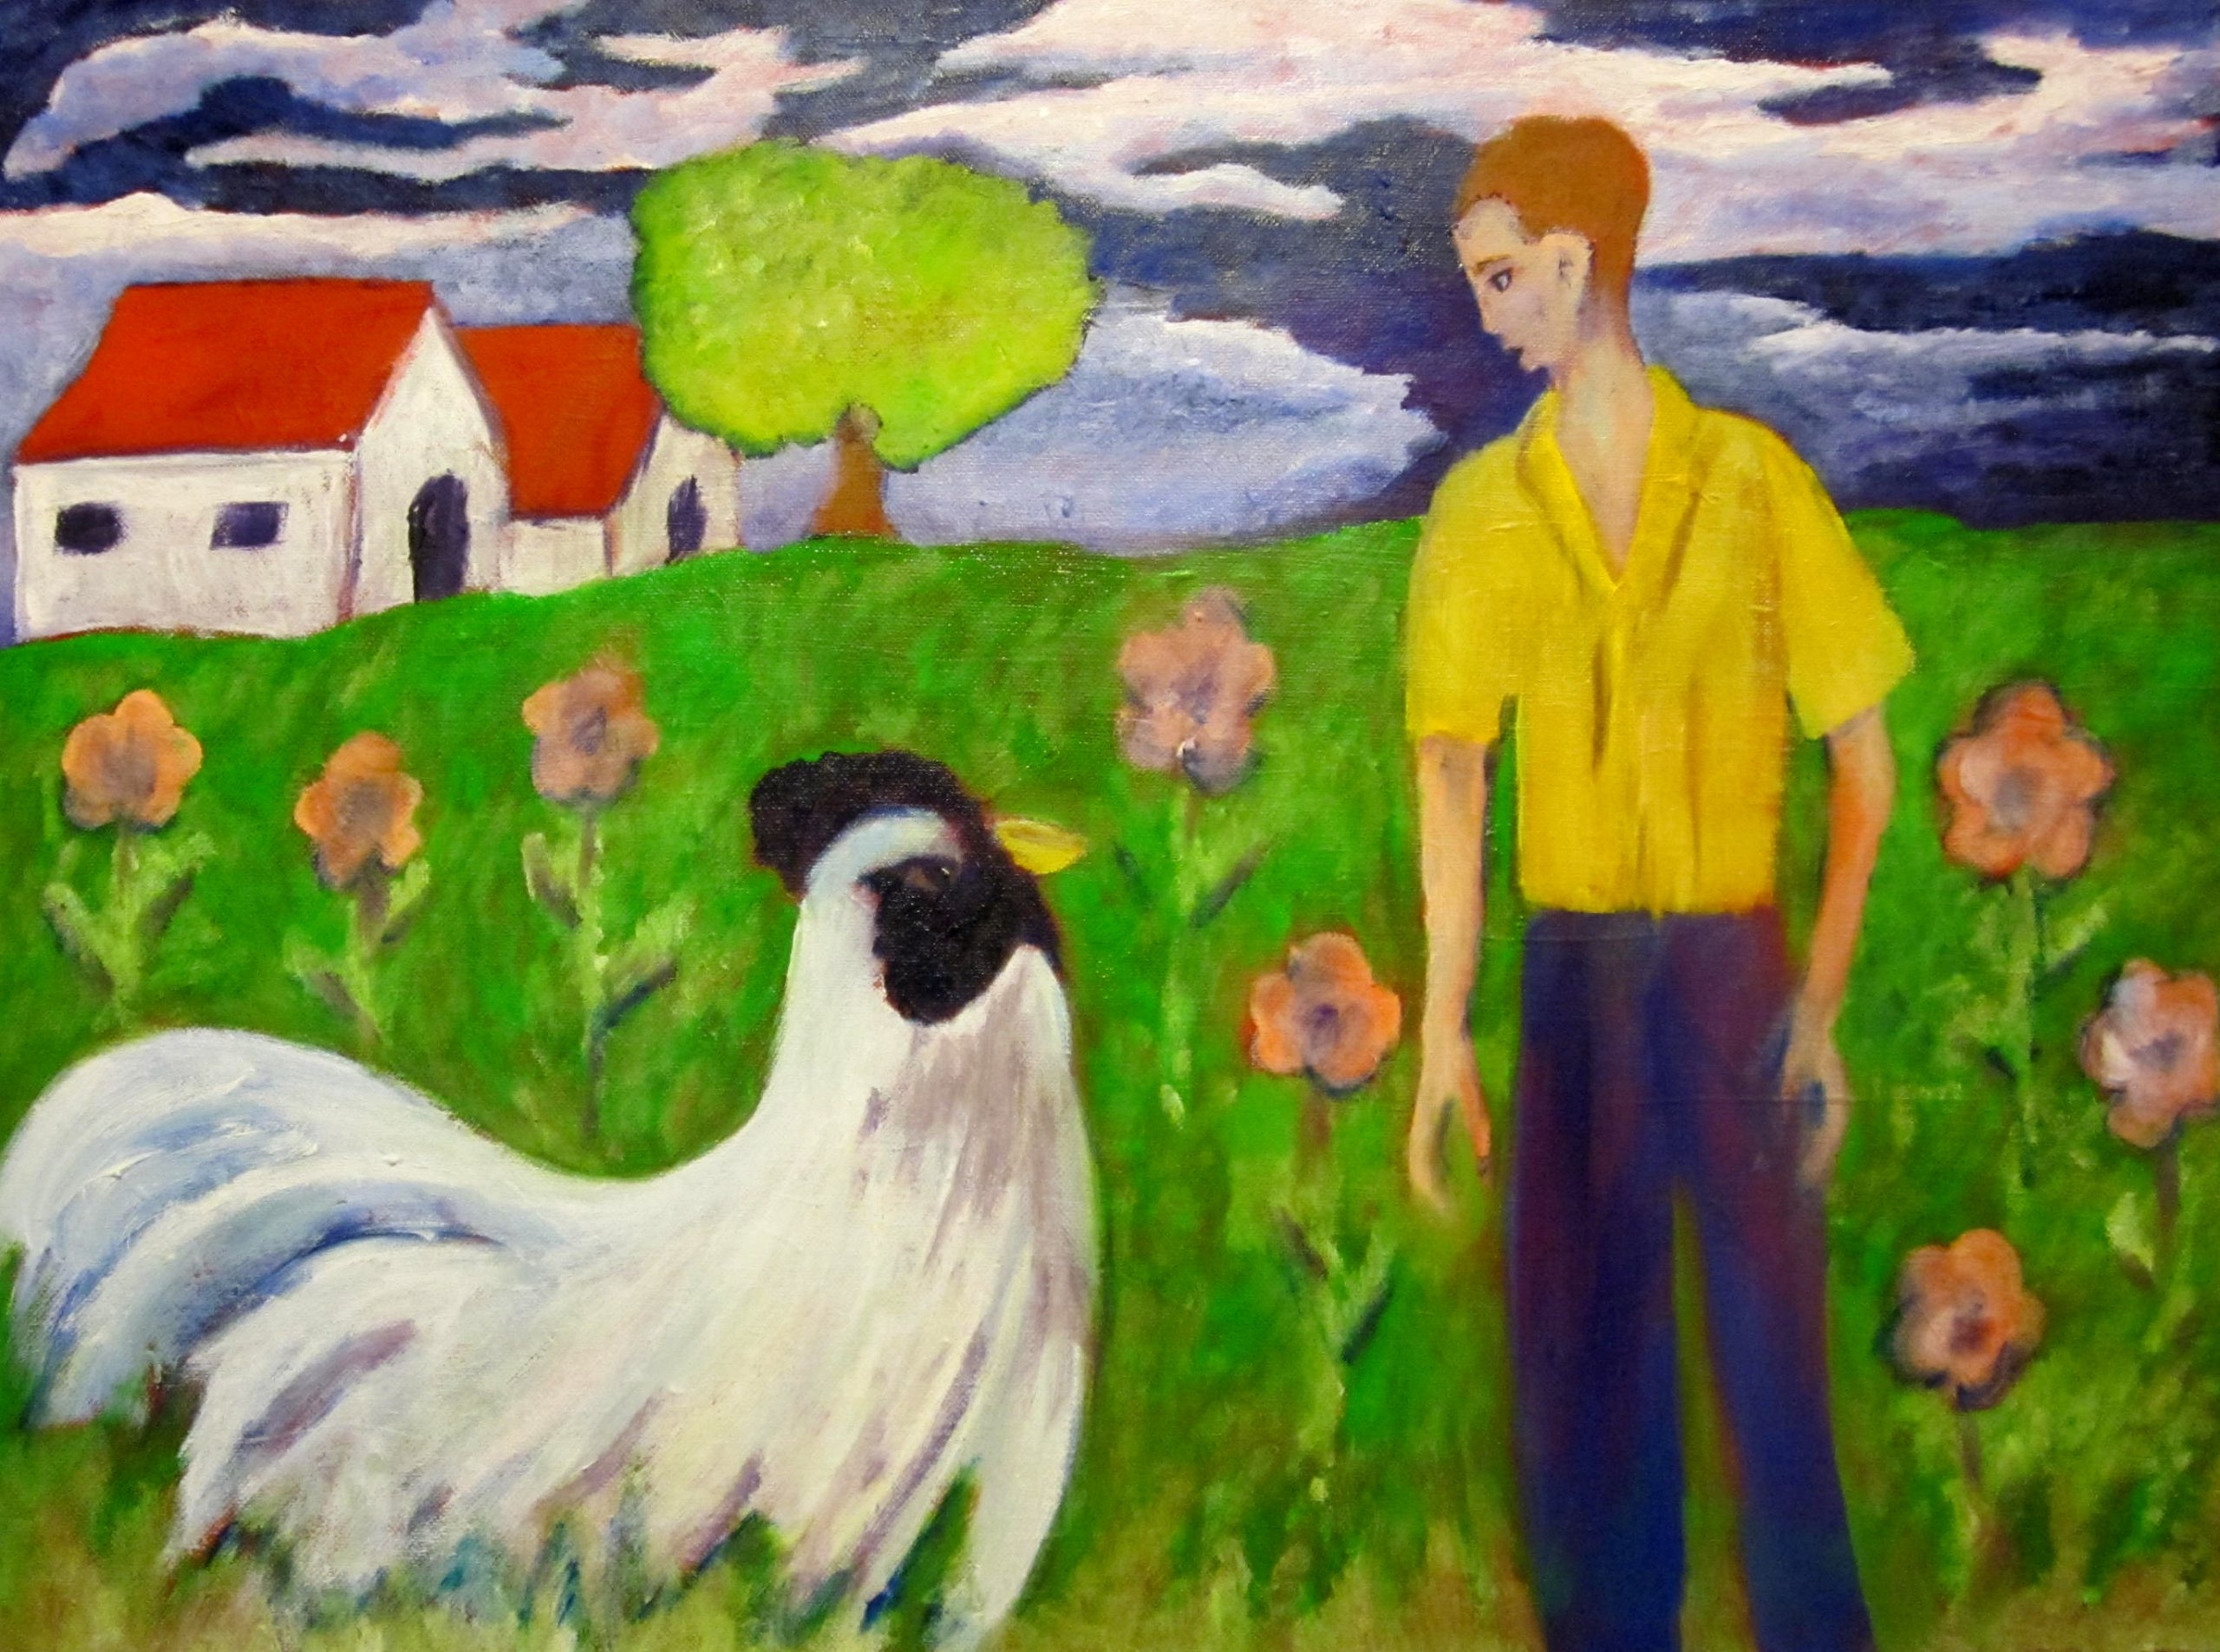 Acrylic on Canvas - The Big Chicken was Back - $400